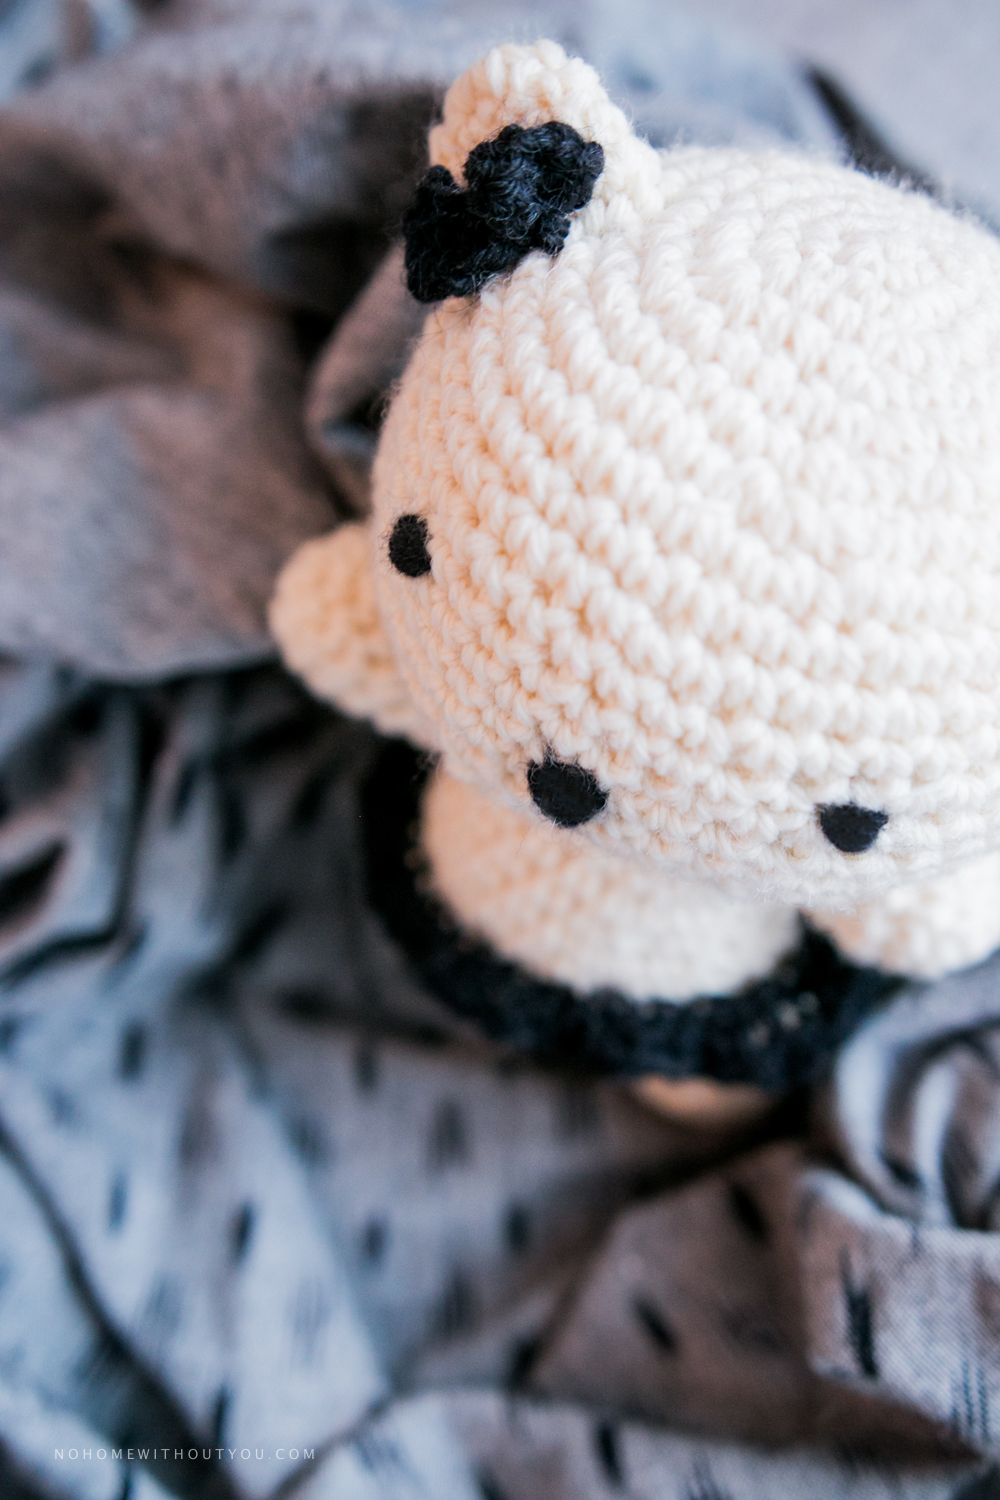 Crocheted amigurumi animals free pattern (9 of 10)